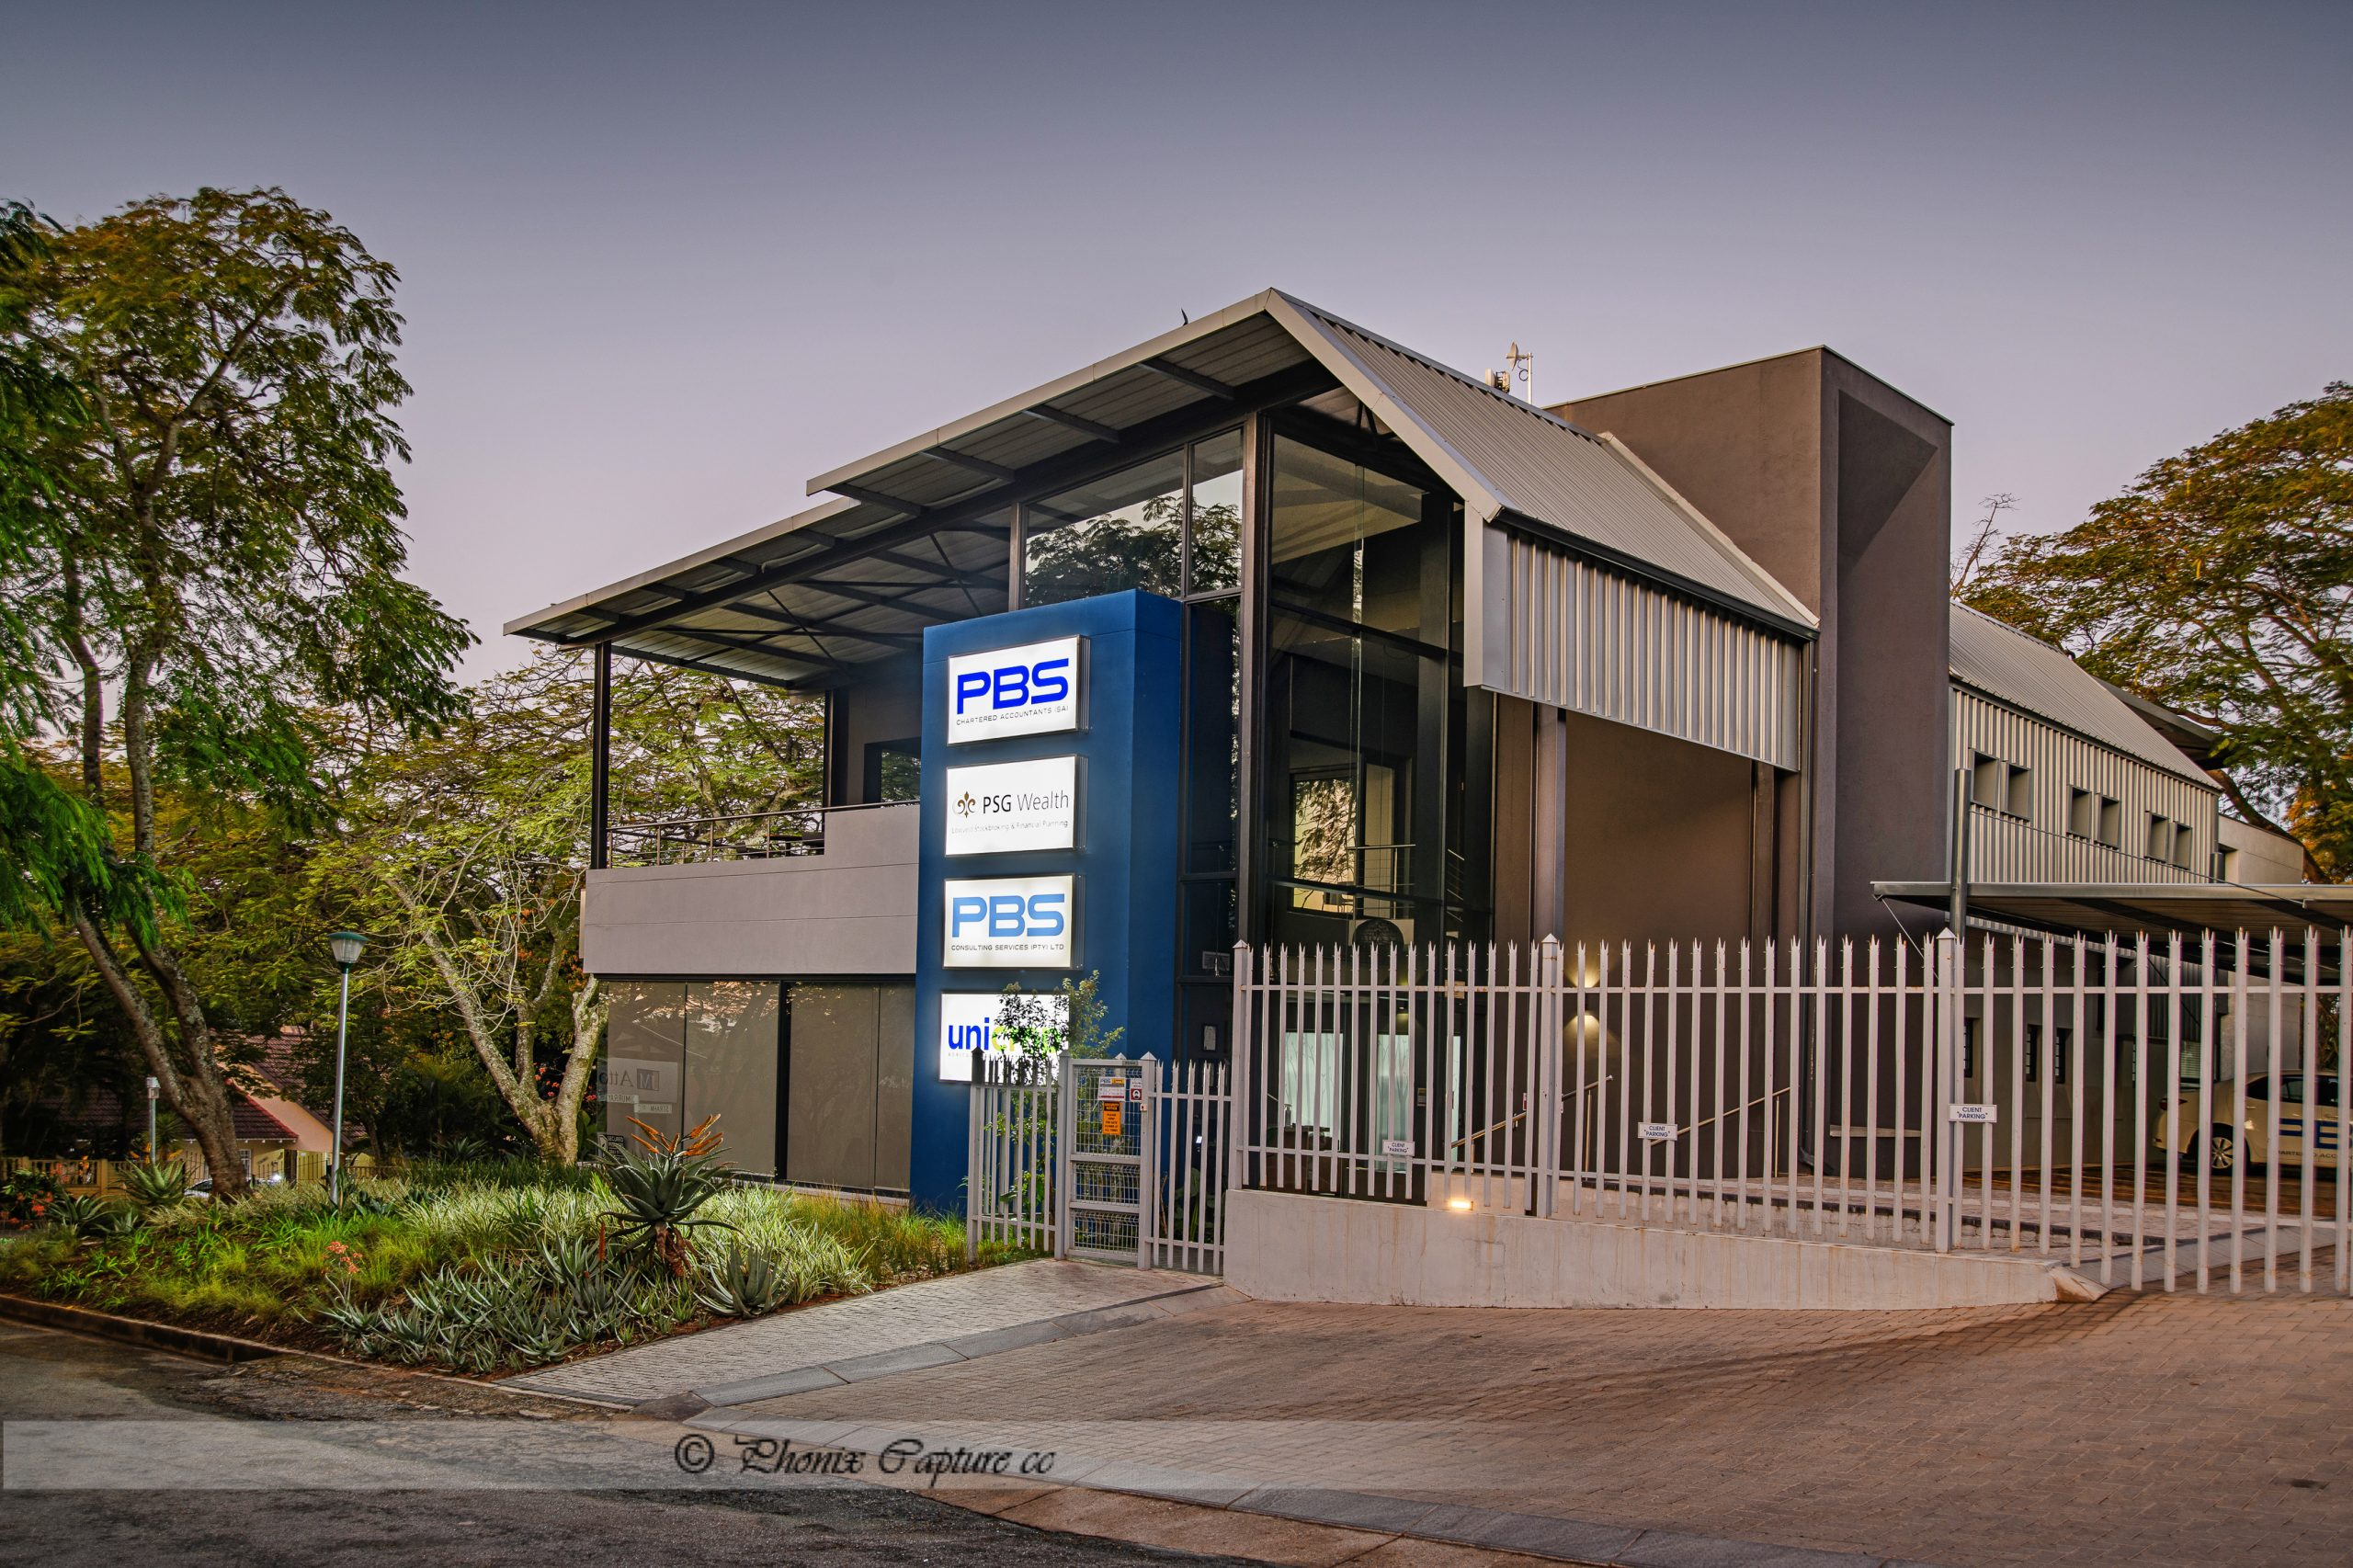 We did the following corporate photographs for PBS Chartered Accountants based in Nelspruit/Mbombela in Mpumalanga . They will be using these images for the revamp of their website.